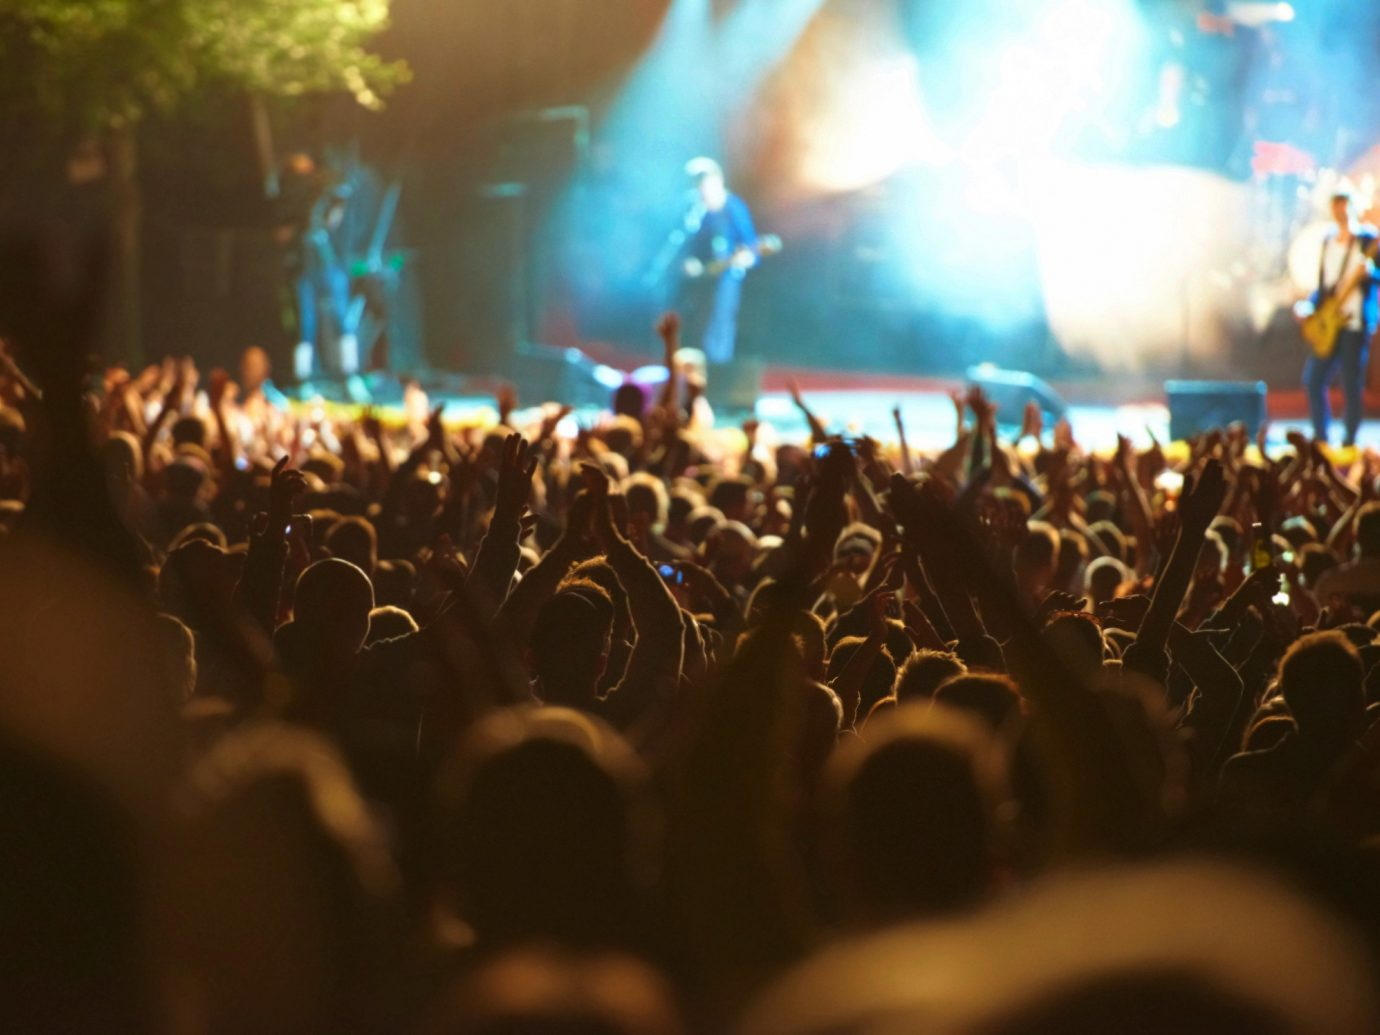 Trip Ideas crowd performance rock concert light people concert person performing arts audience watching Entertainment stage Music event festival musical theatre dark